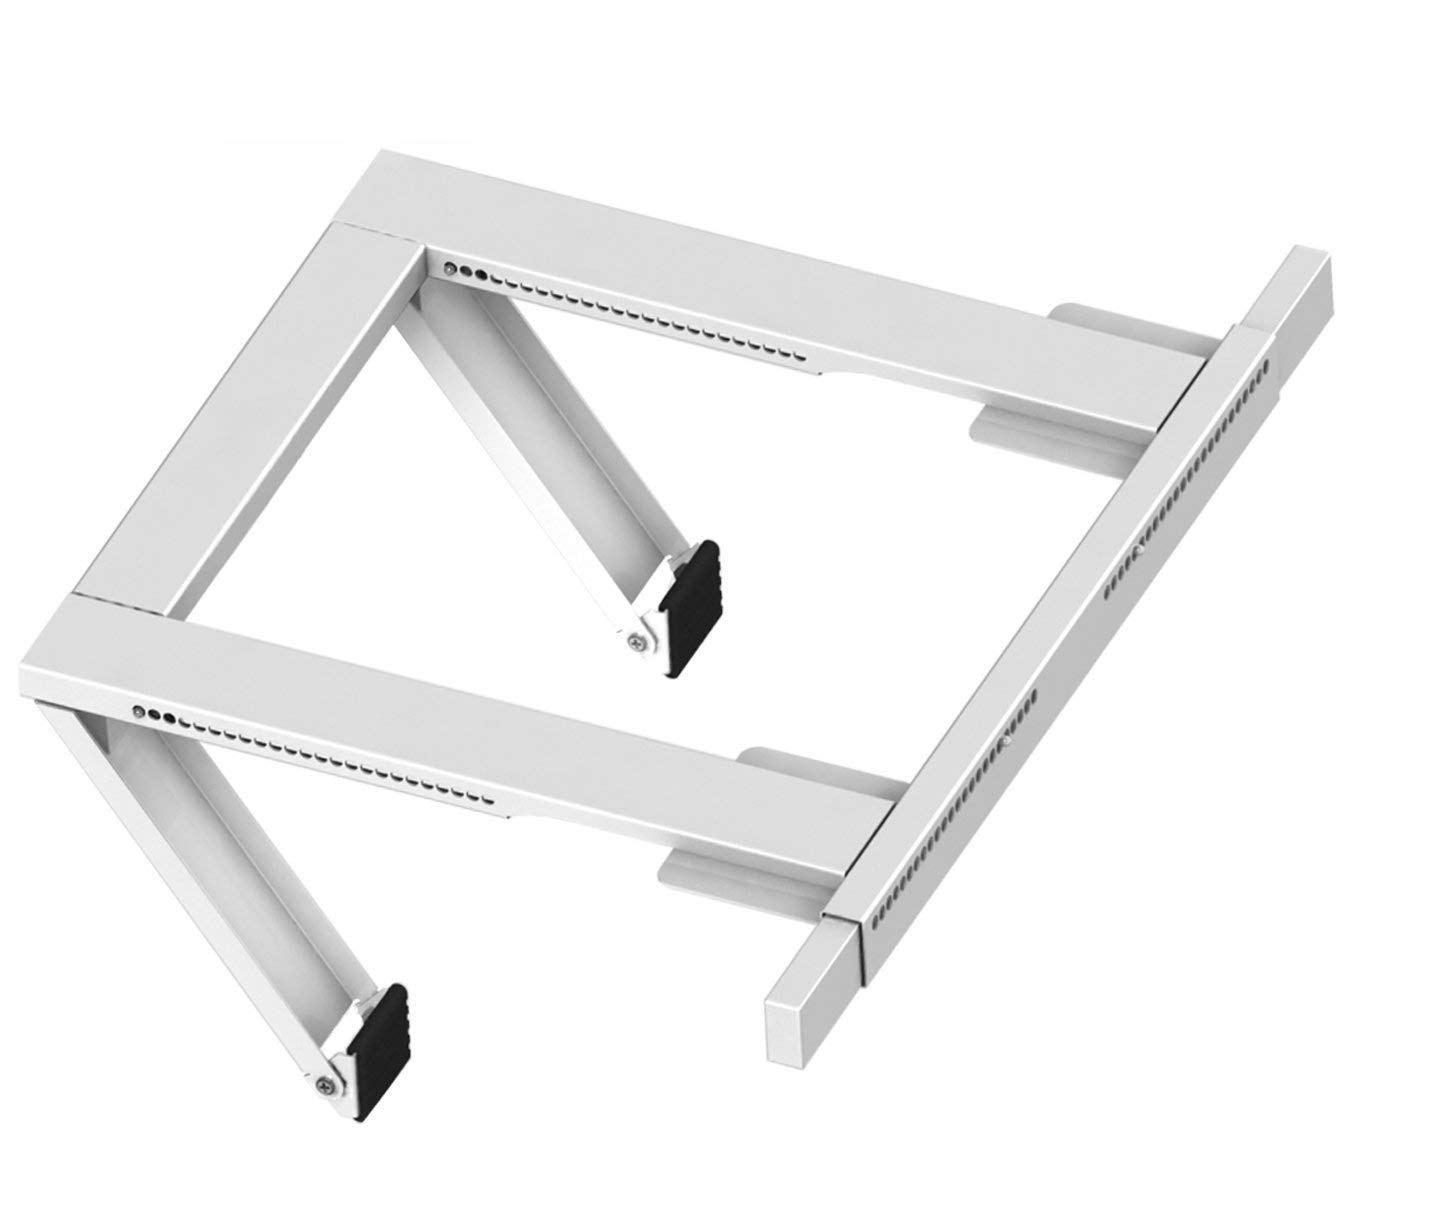 Jeacent AC Window Air Conditioner Support Bracket No Drilling Jeacent Innovations PC002